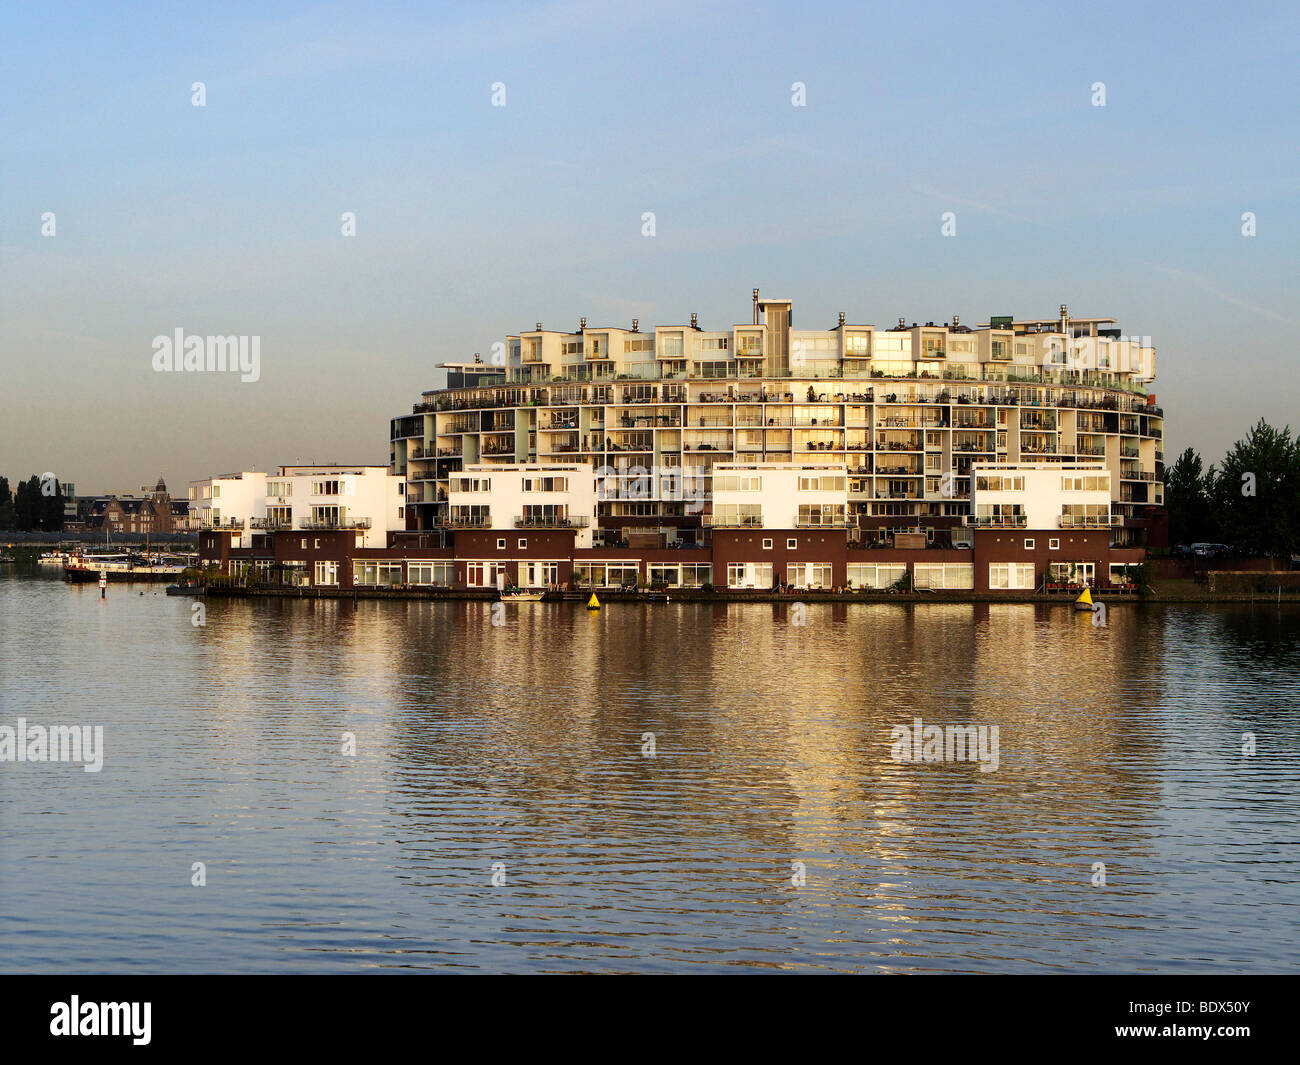 Apartment block at the Rijn canal, Amsterdam, Holland, Netherlands, Europe - Stock Image